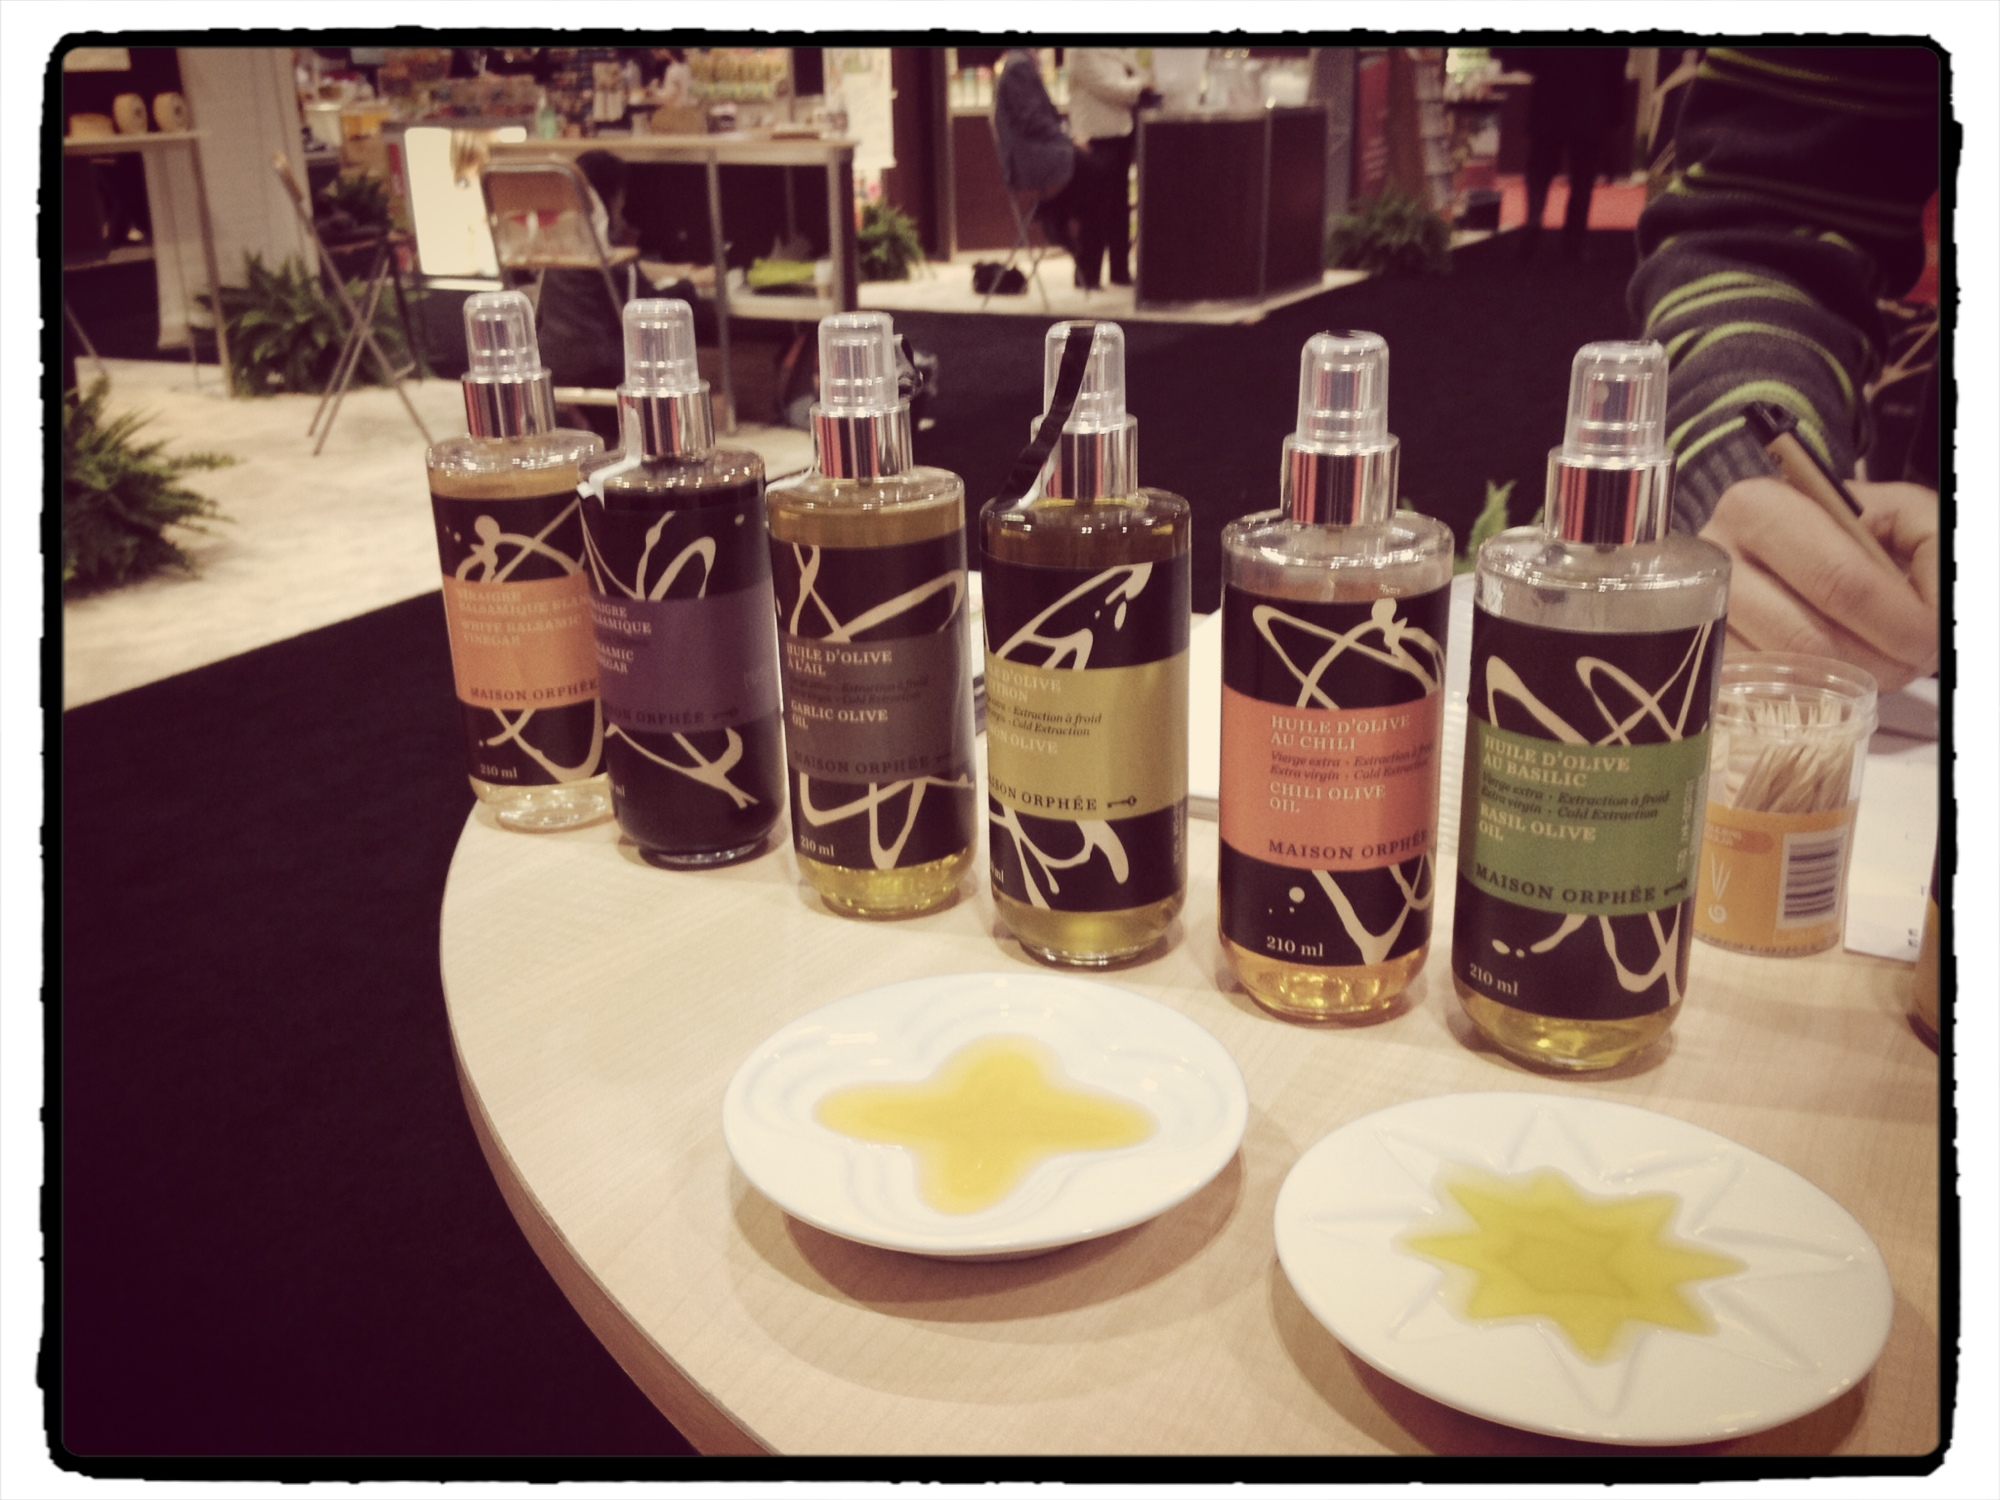 Maison Orphee flavoured oils with spritzer tops from SIAL Canada 2013 - The Messy Baker.com